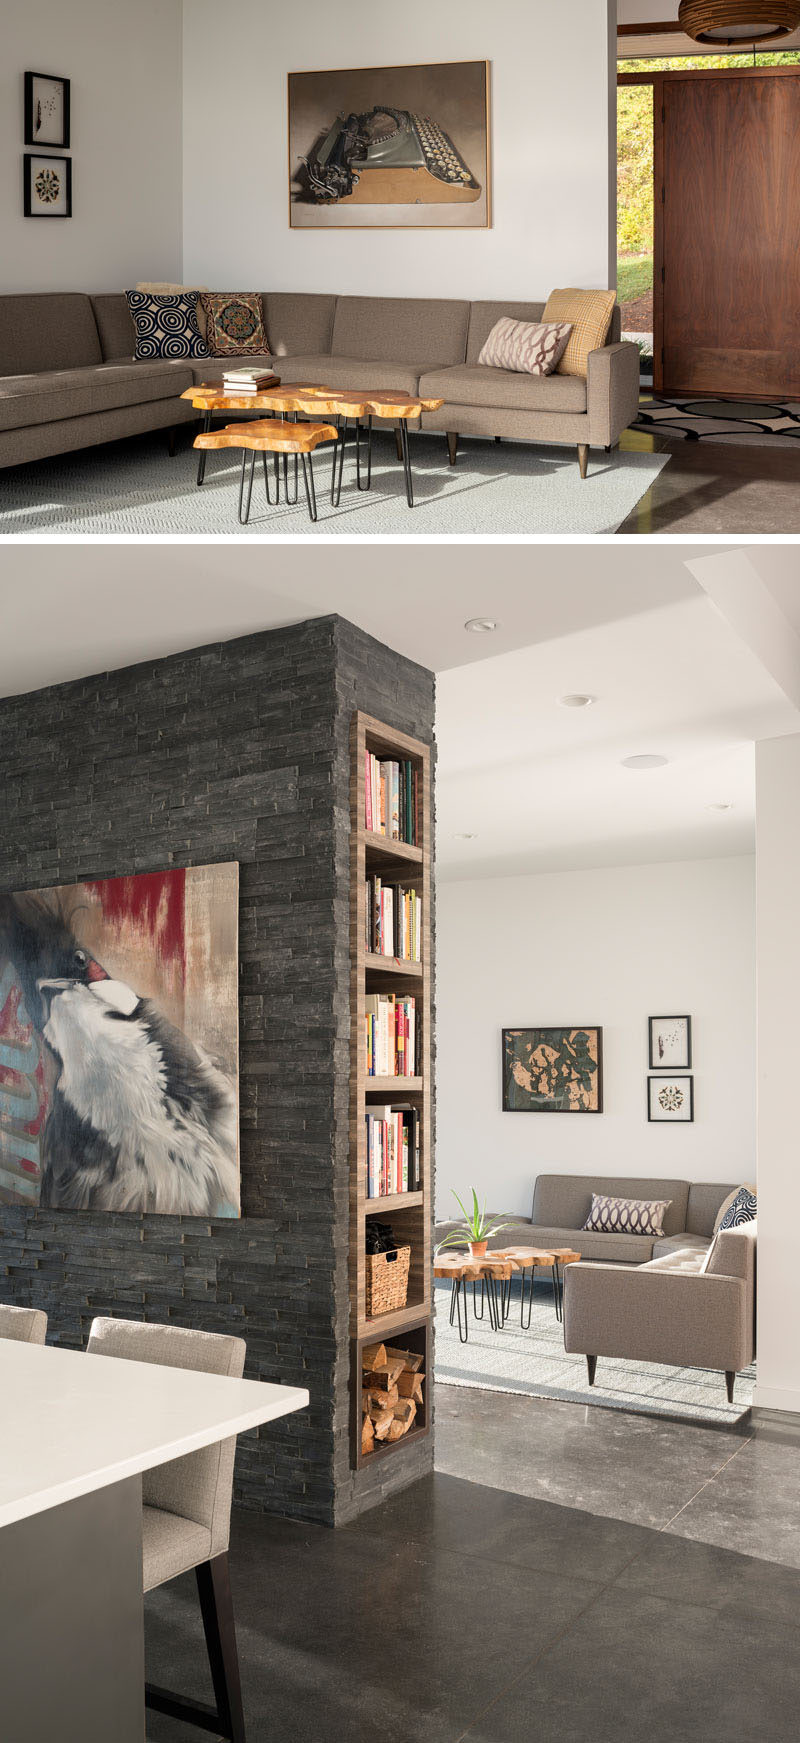 A large wood door welcomes visitors to this modern house, and opens up to the living room, while a stone fireplace with a built-in end bookshelves, separates the living space from the kitchen. #LivingRoom #FrontDoor #Shelving